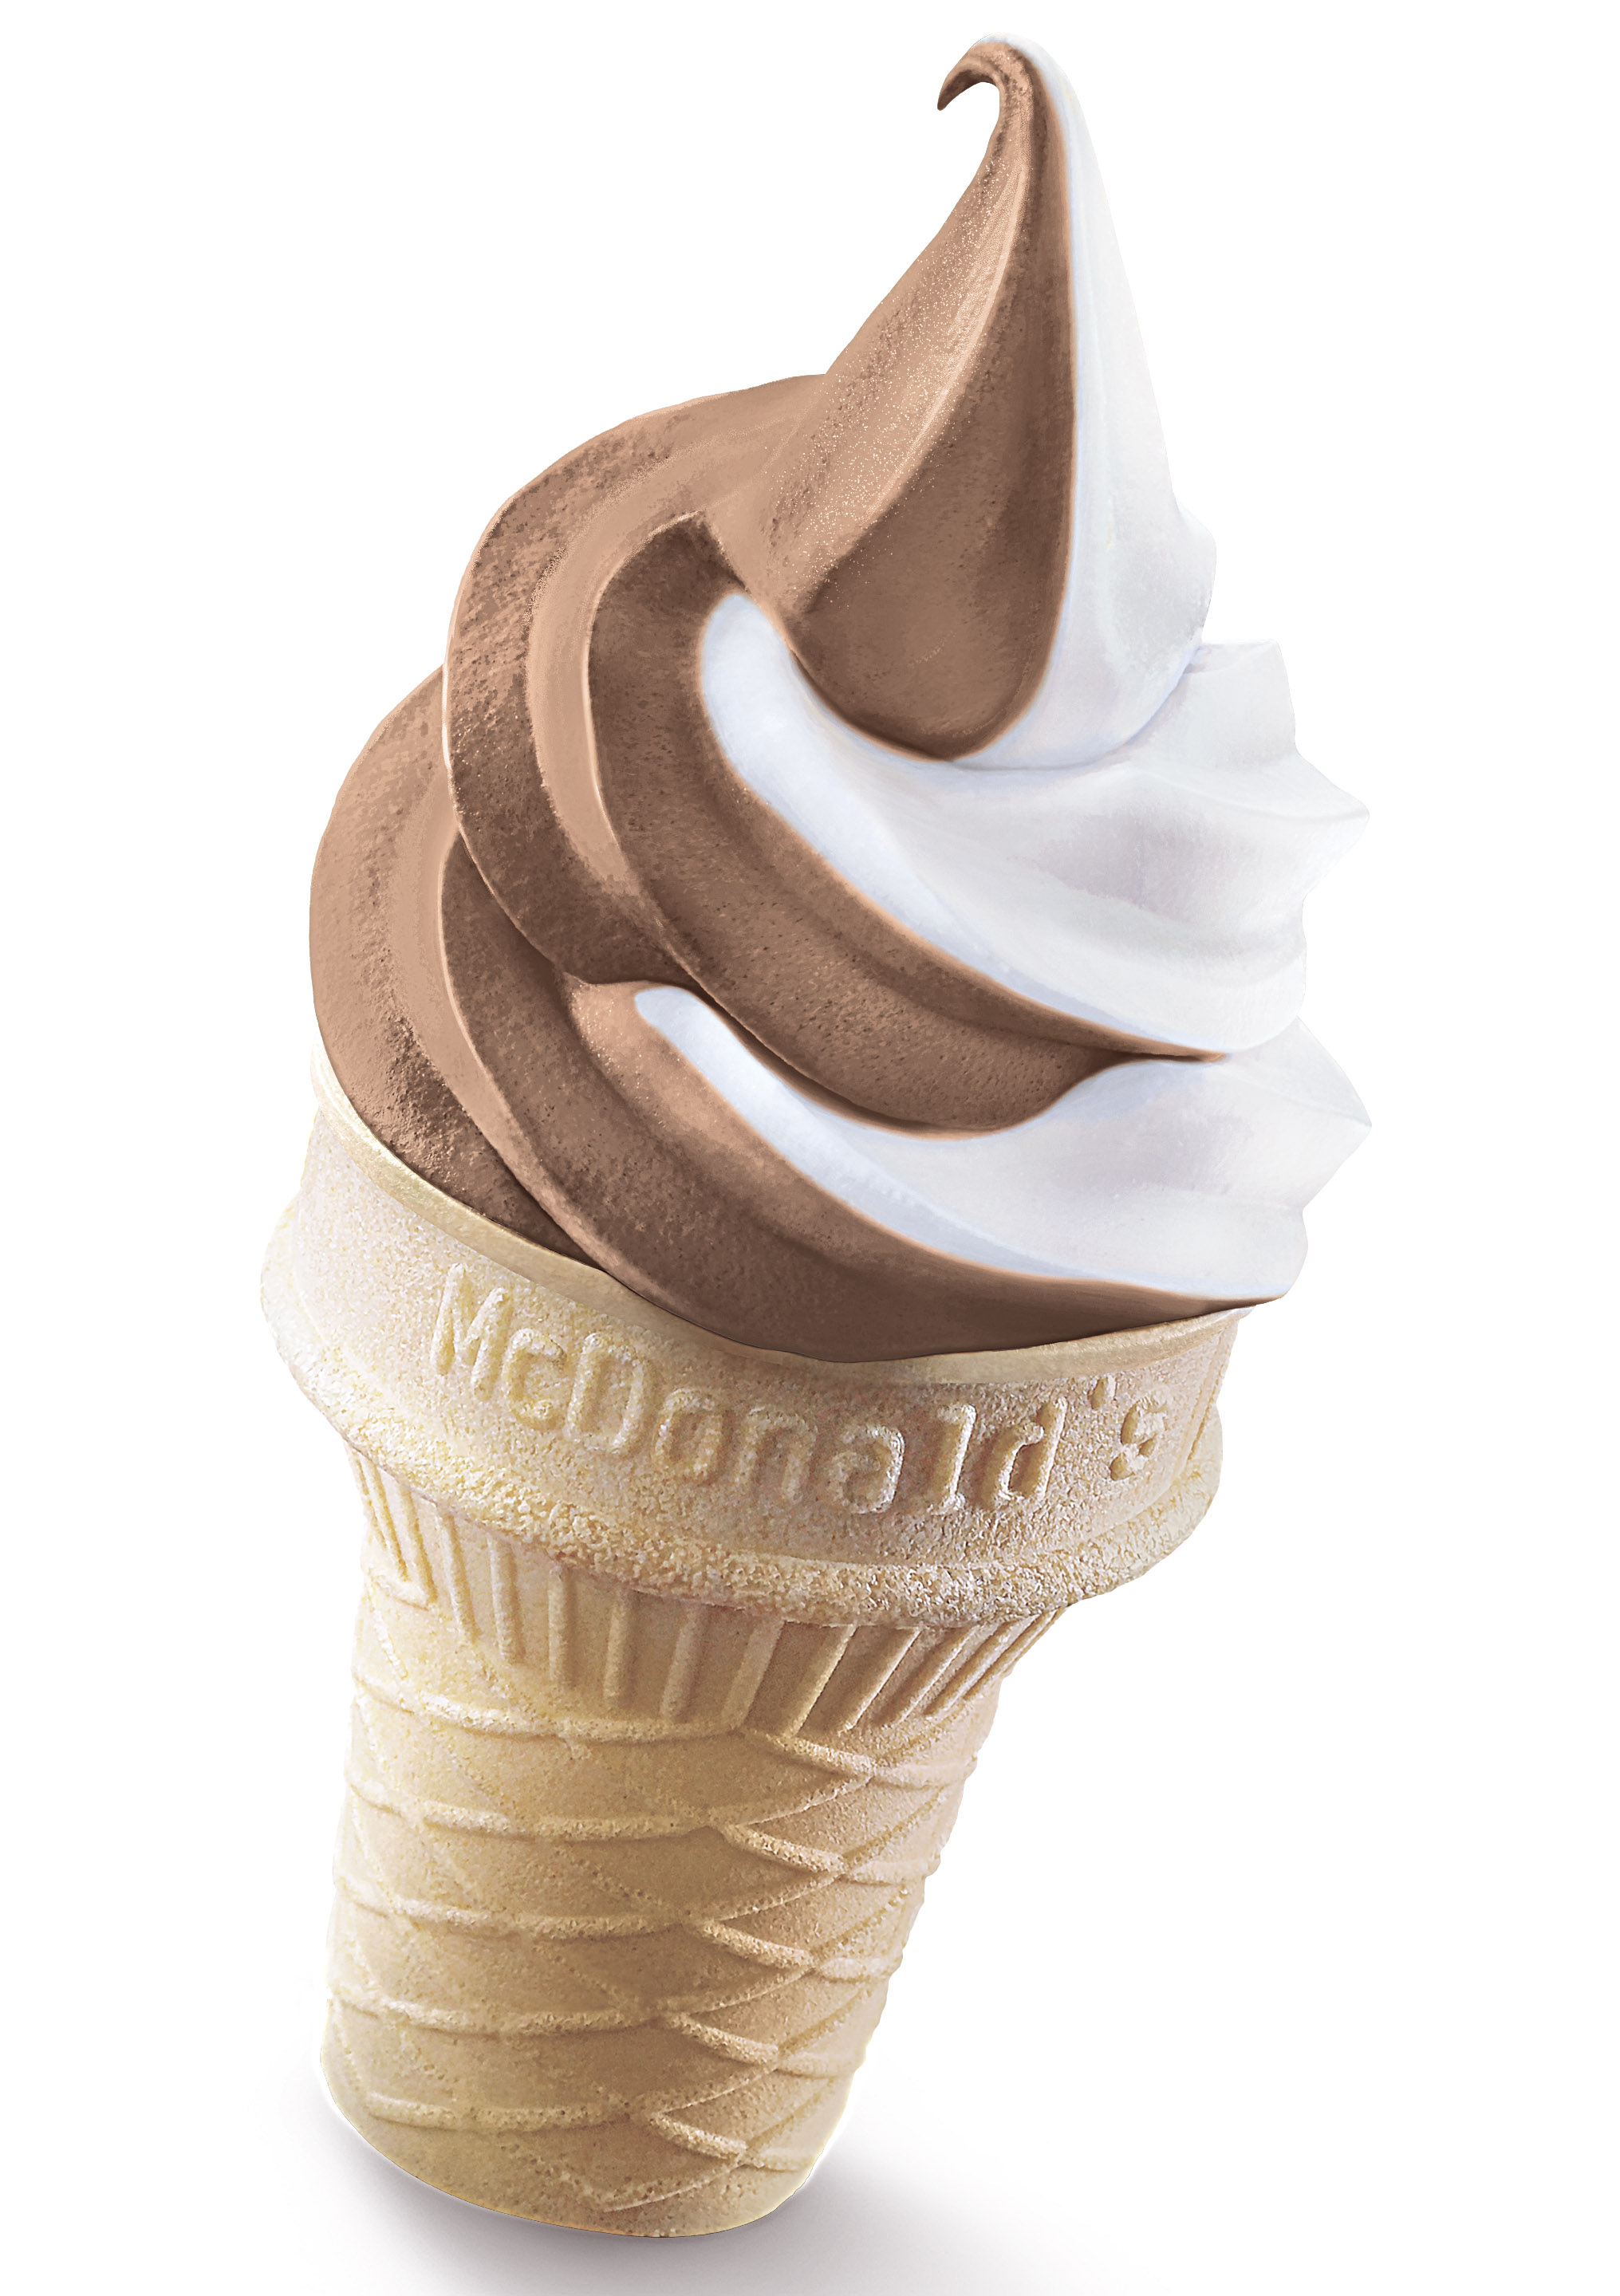 Shhhh… here's some insider info on how to be the first to try (for free) this new Hershey's McFlurry by McDonald's - Alvinology